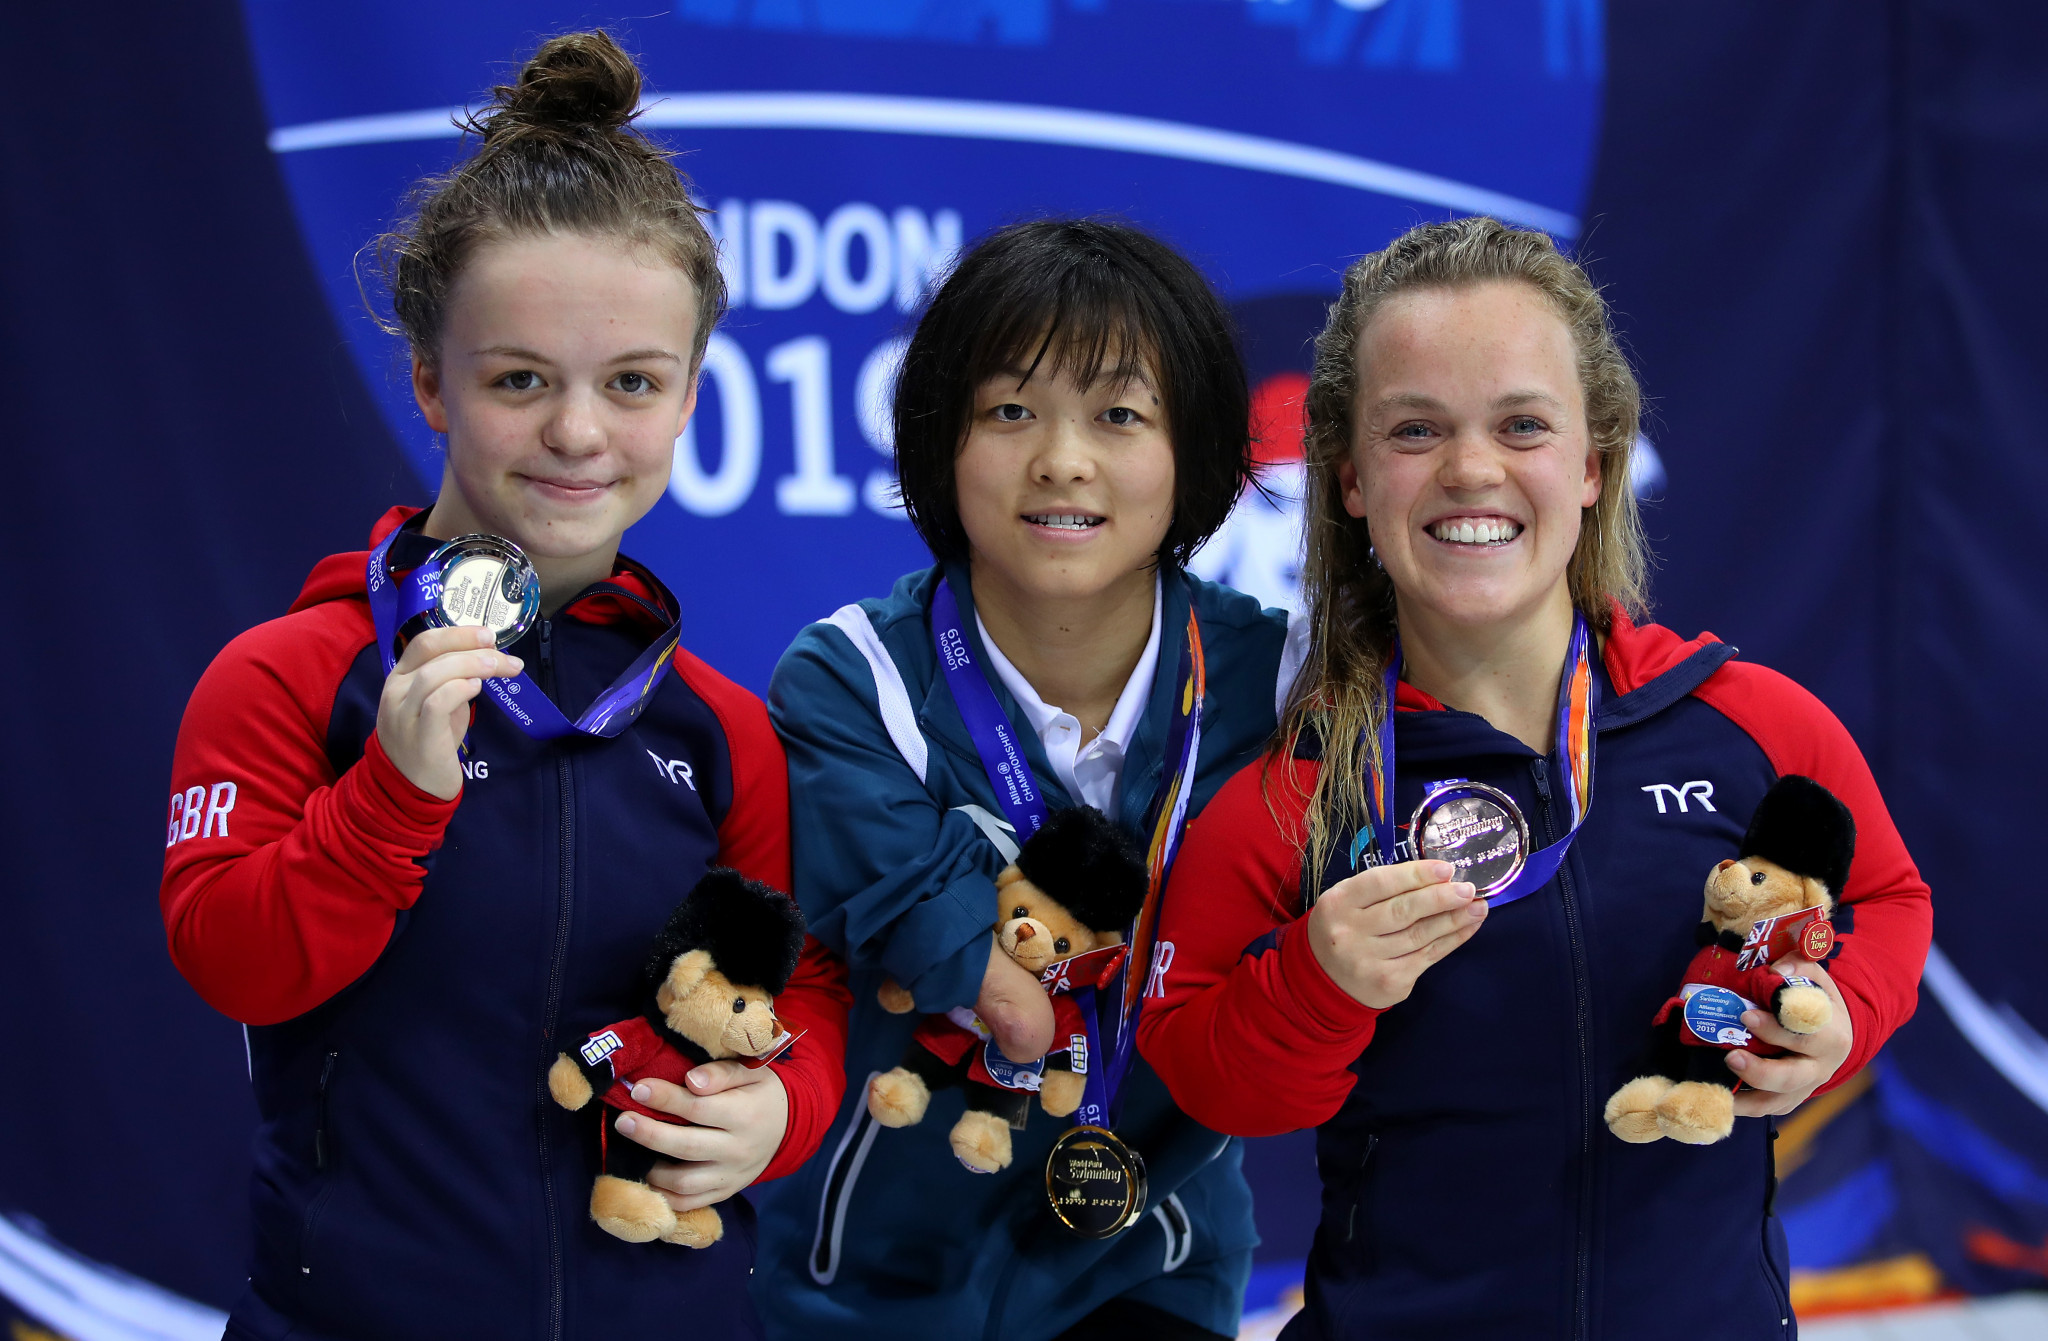 In excess of 600 swimmers competed at the 2019 World Championships in London ©Getty Images